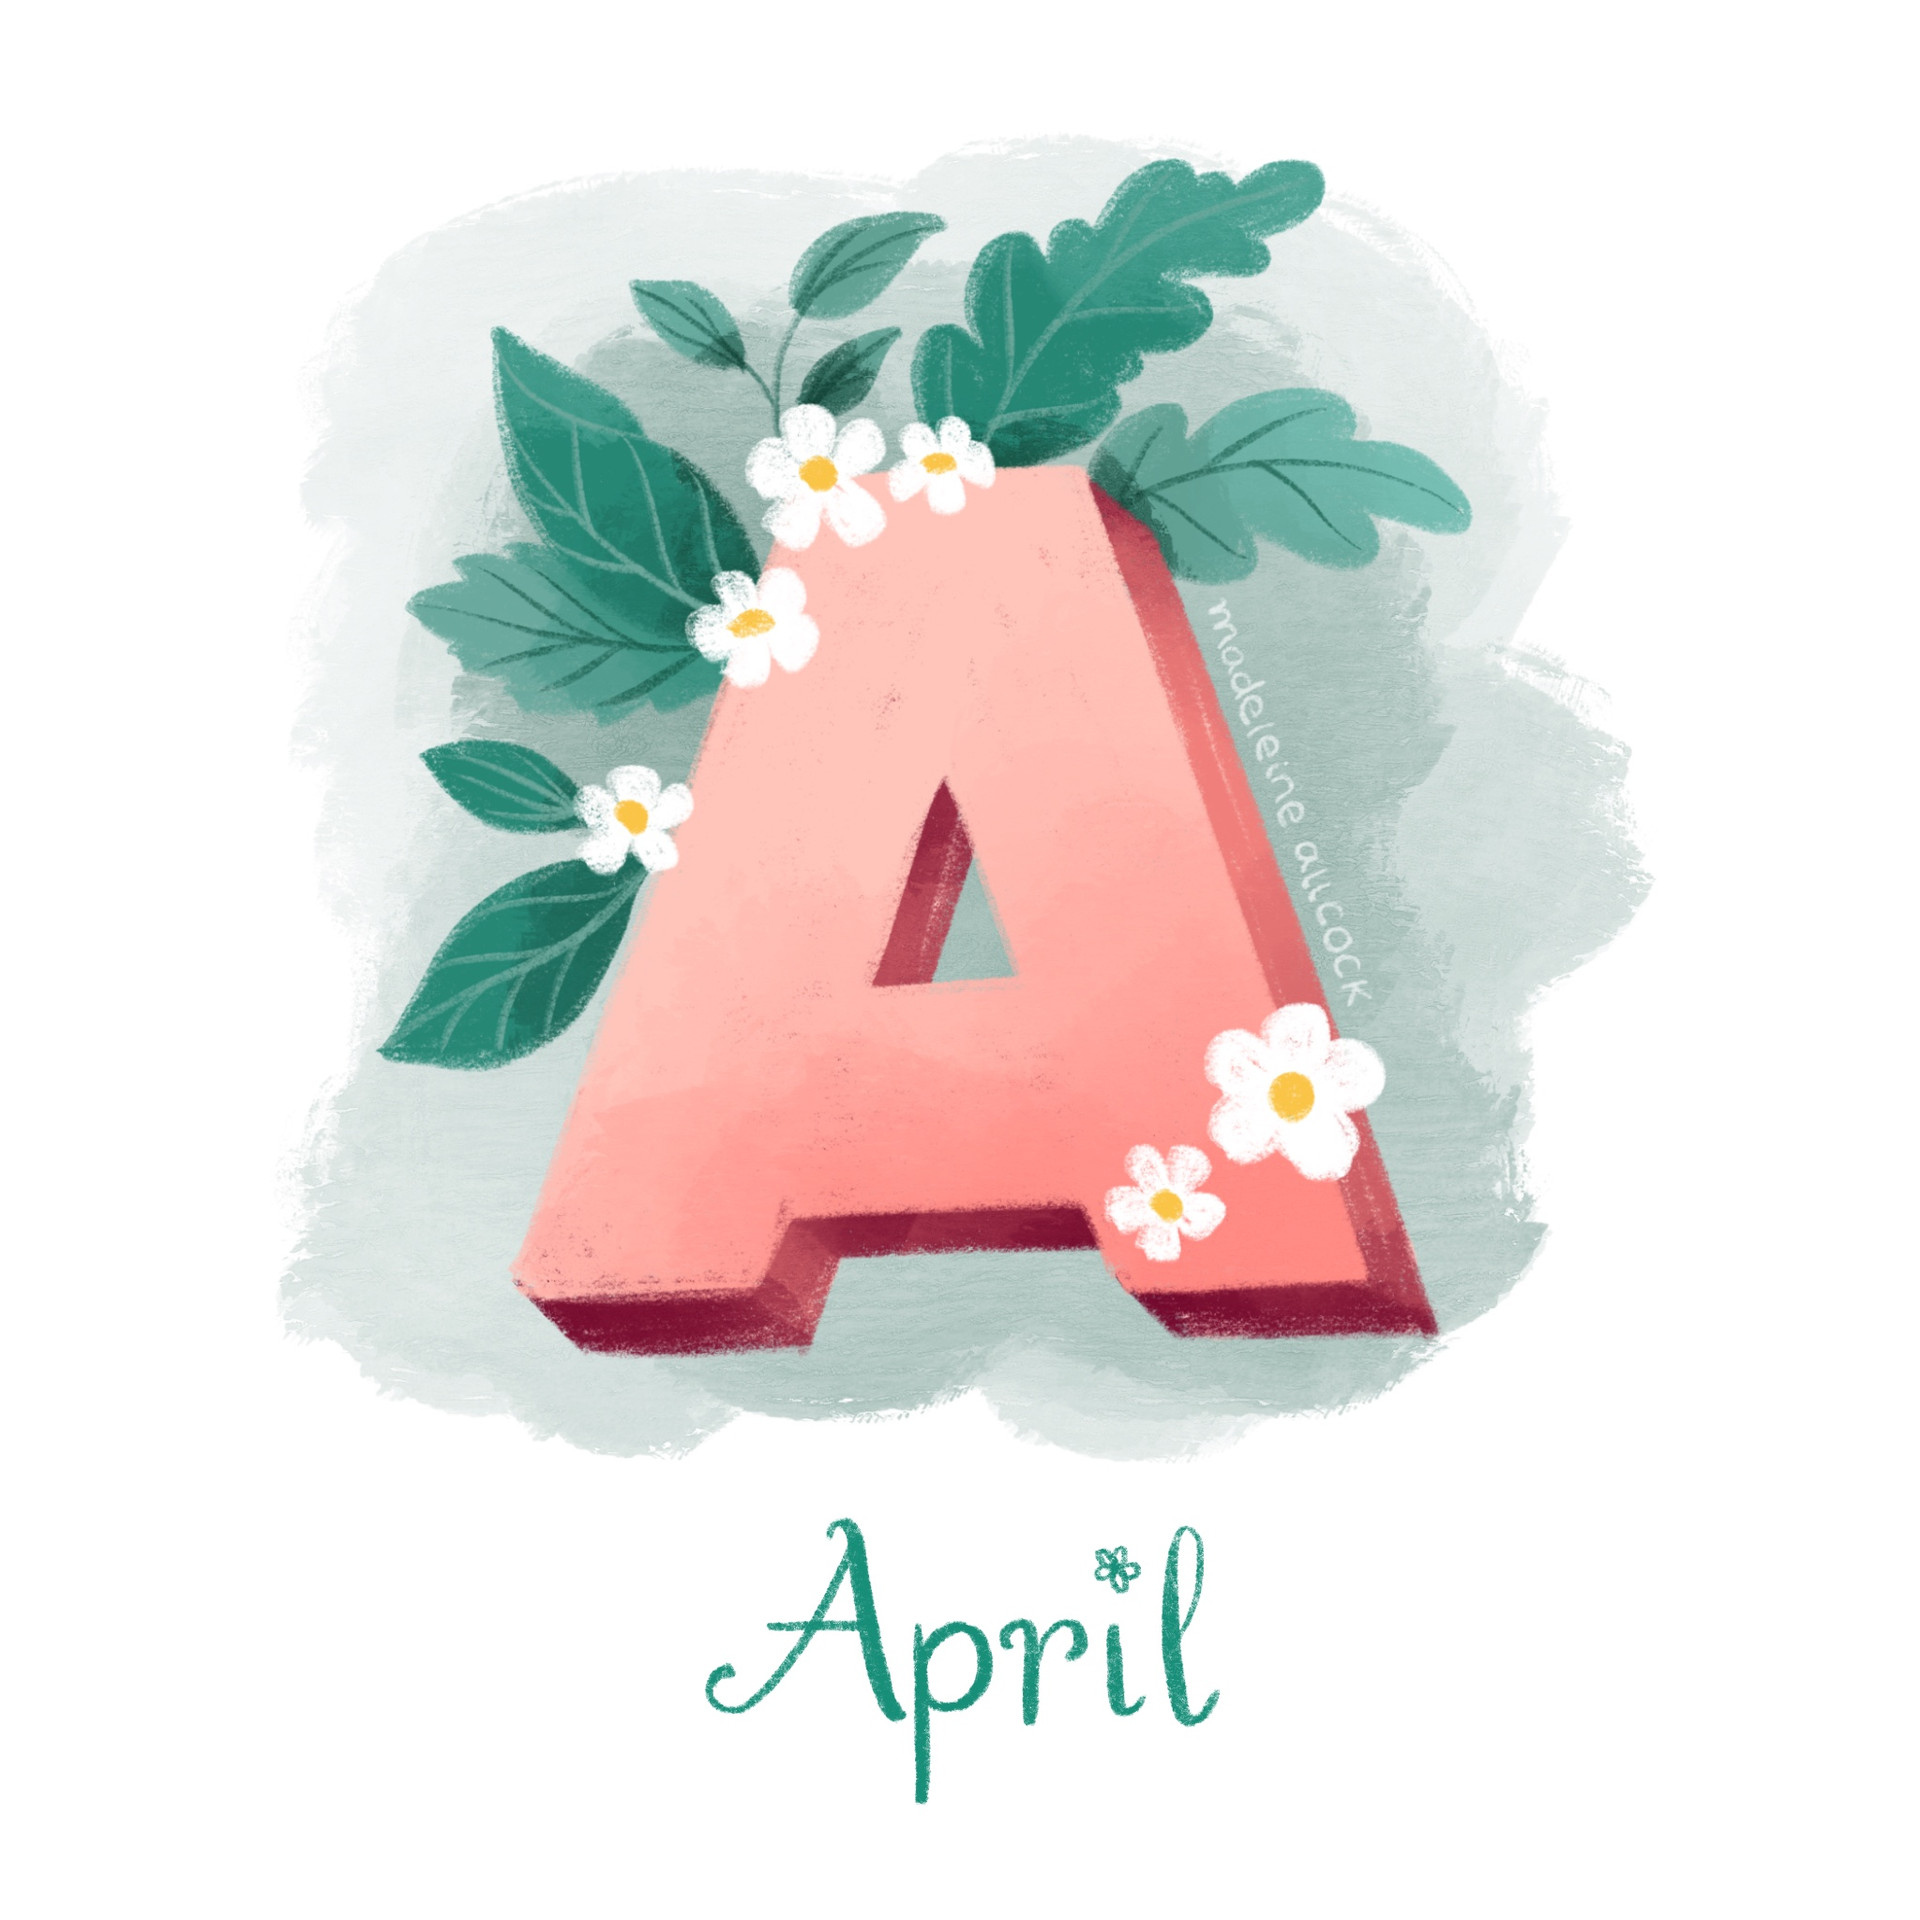 A is for April